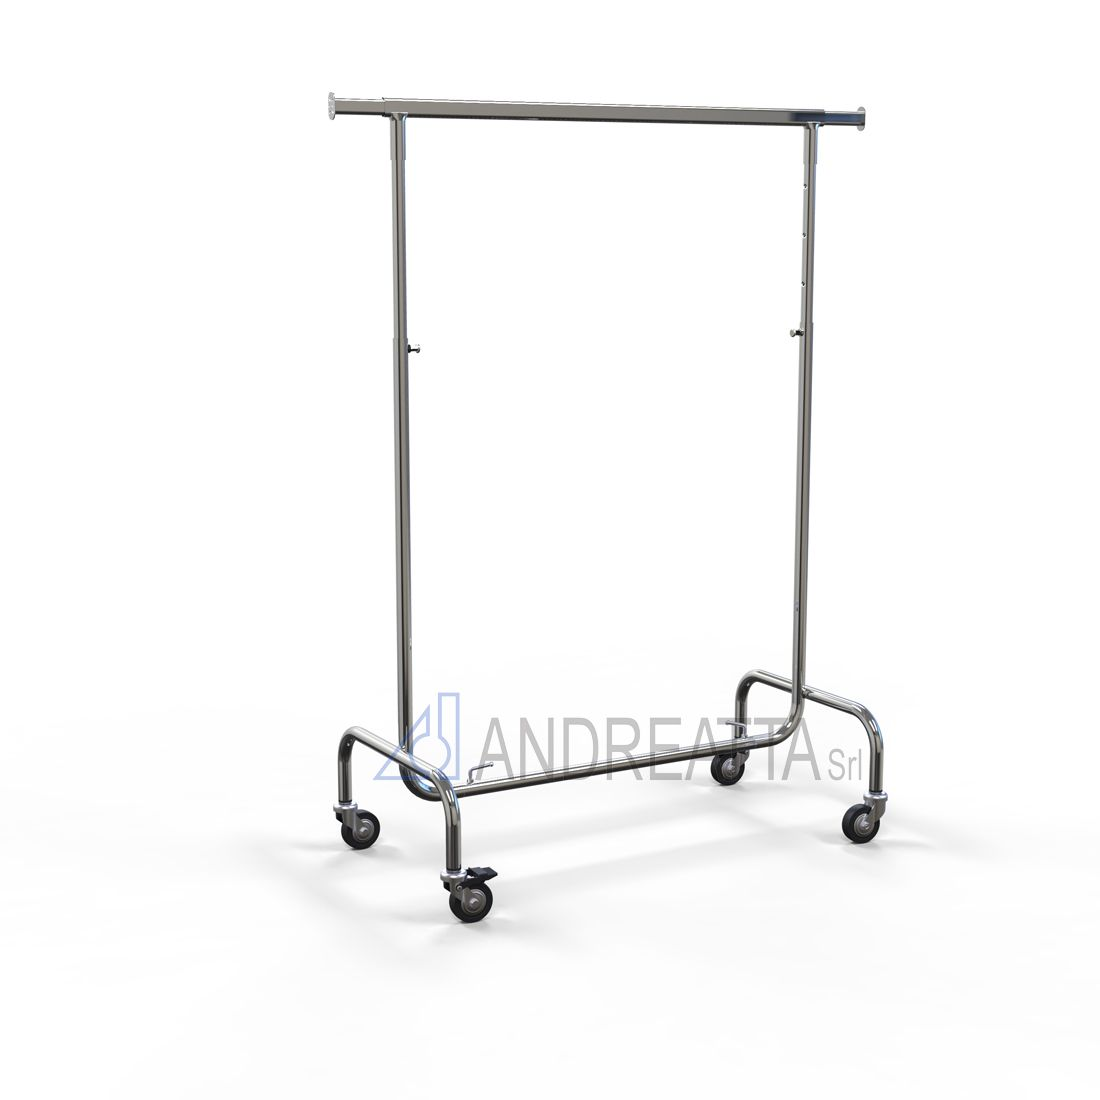 Garment rail Adjustable in height